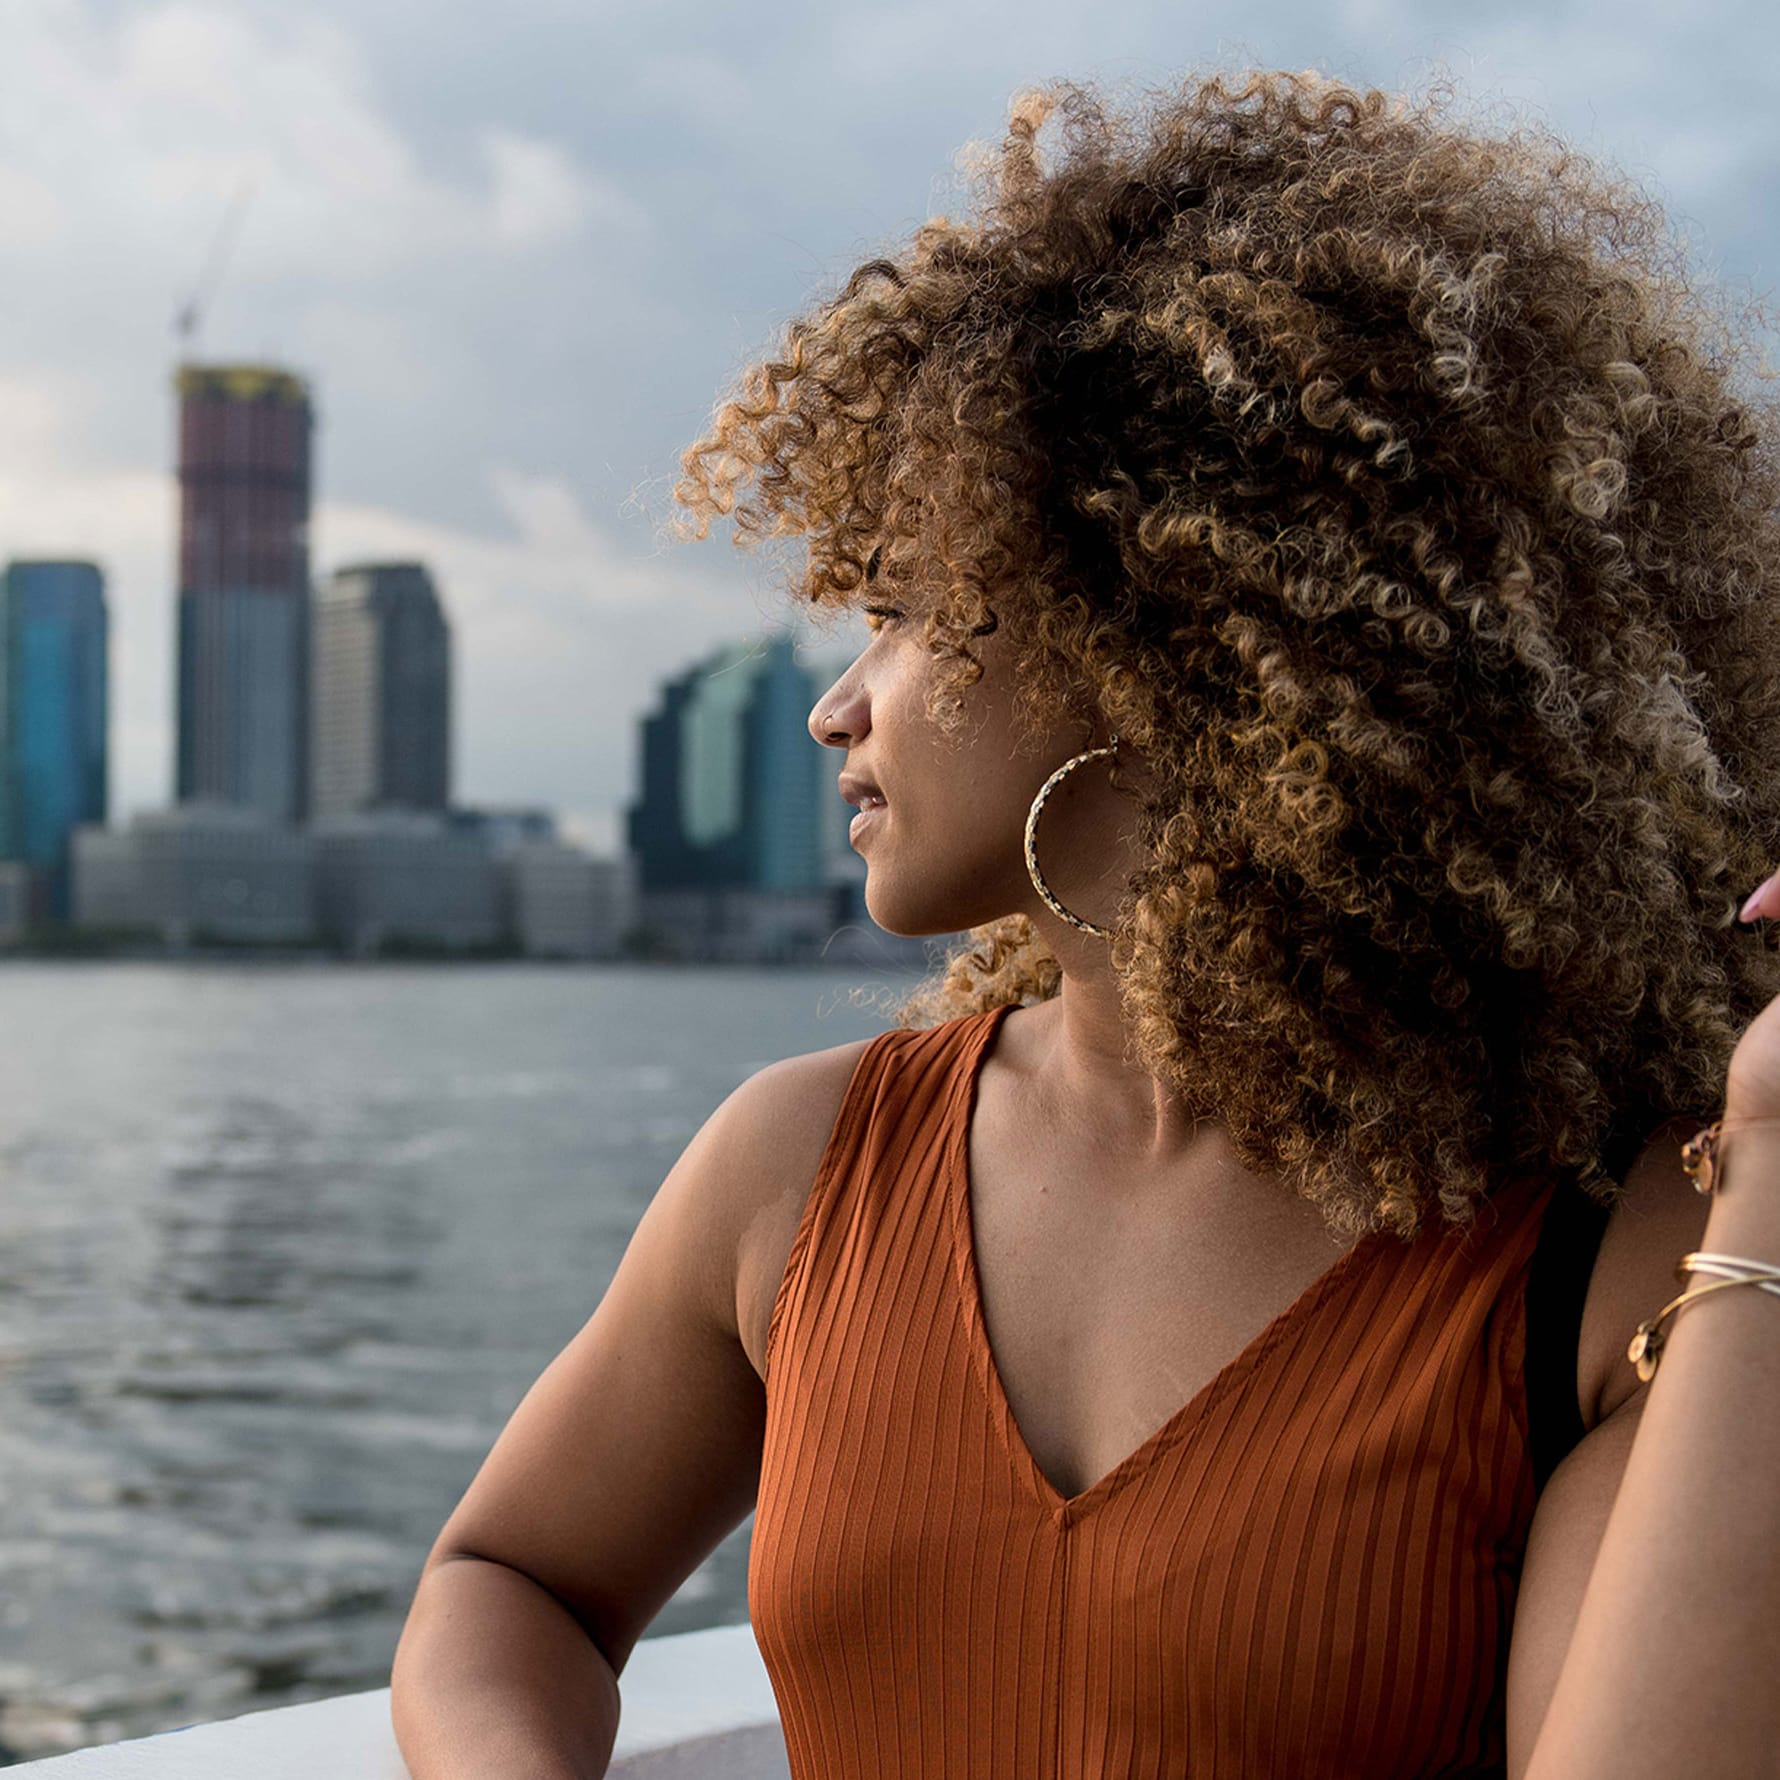 Super curly hair woman overlooking the city